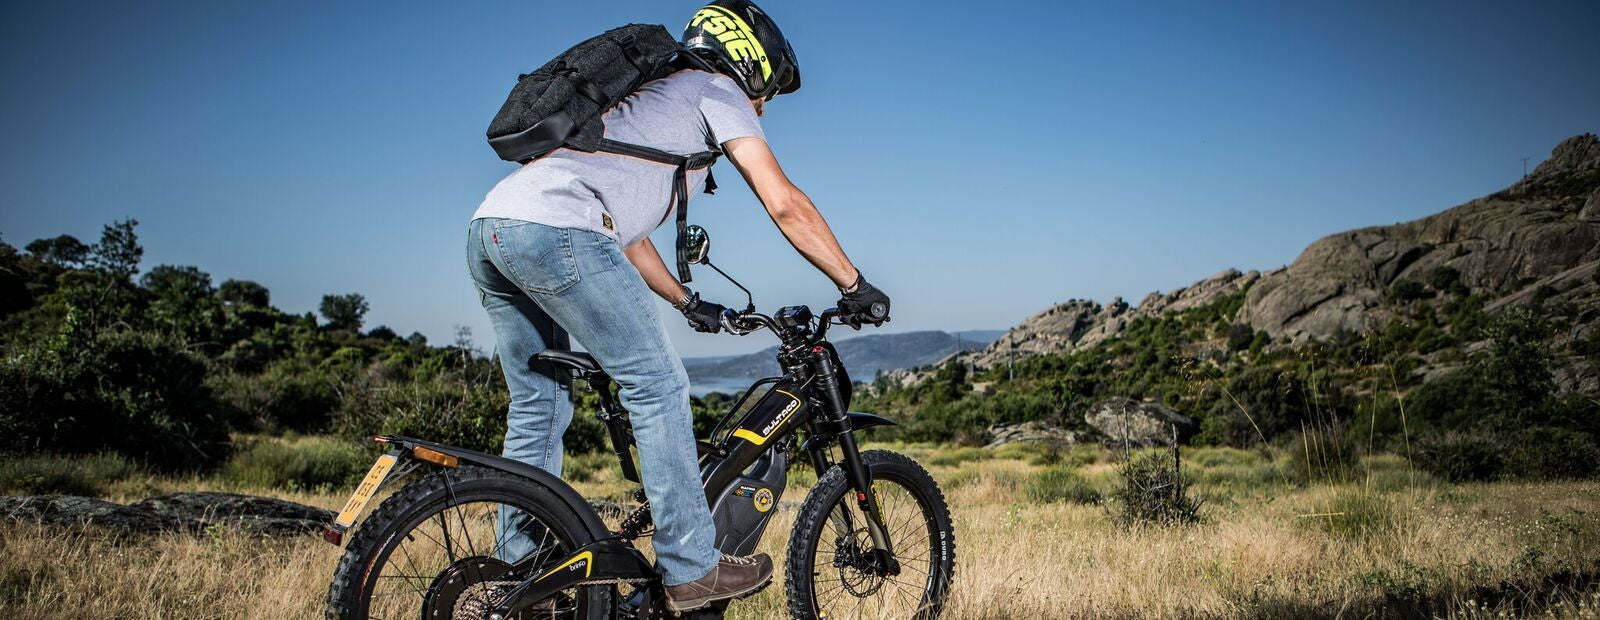 Bultaco Brinco C Restyle Day Time Shoot 3